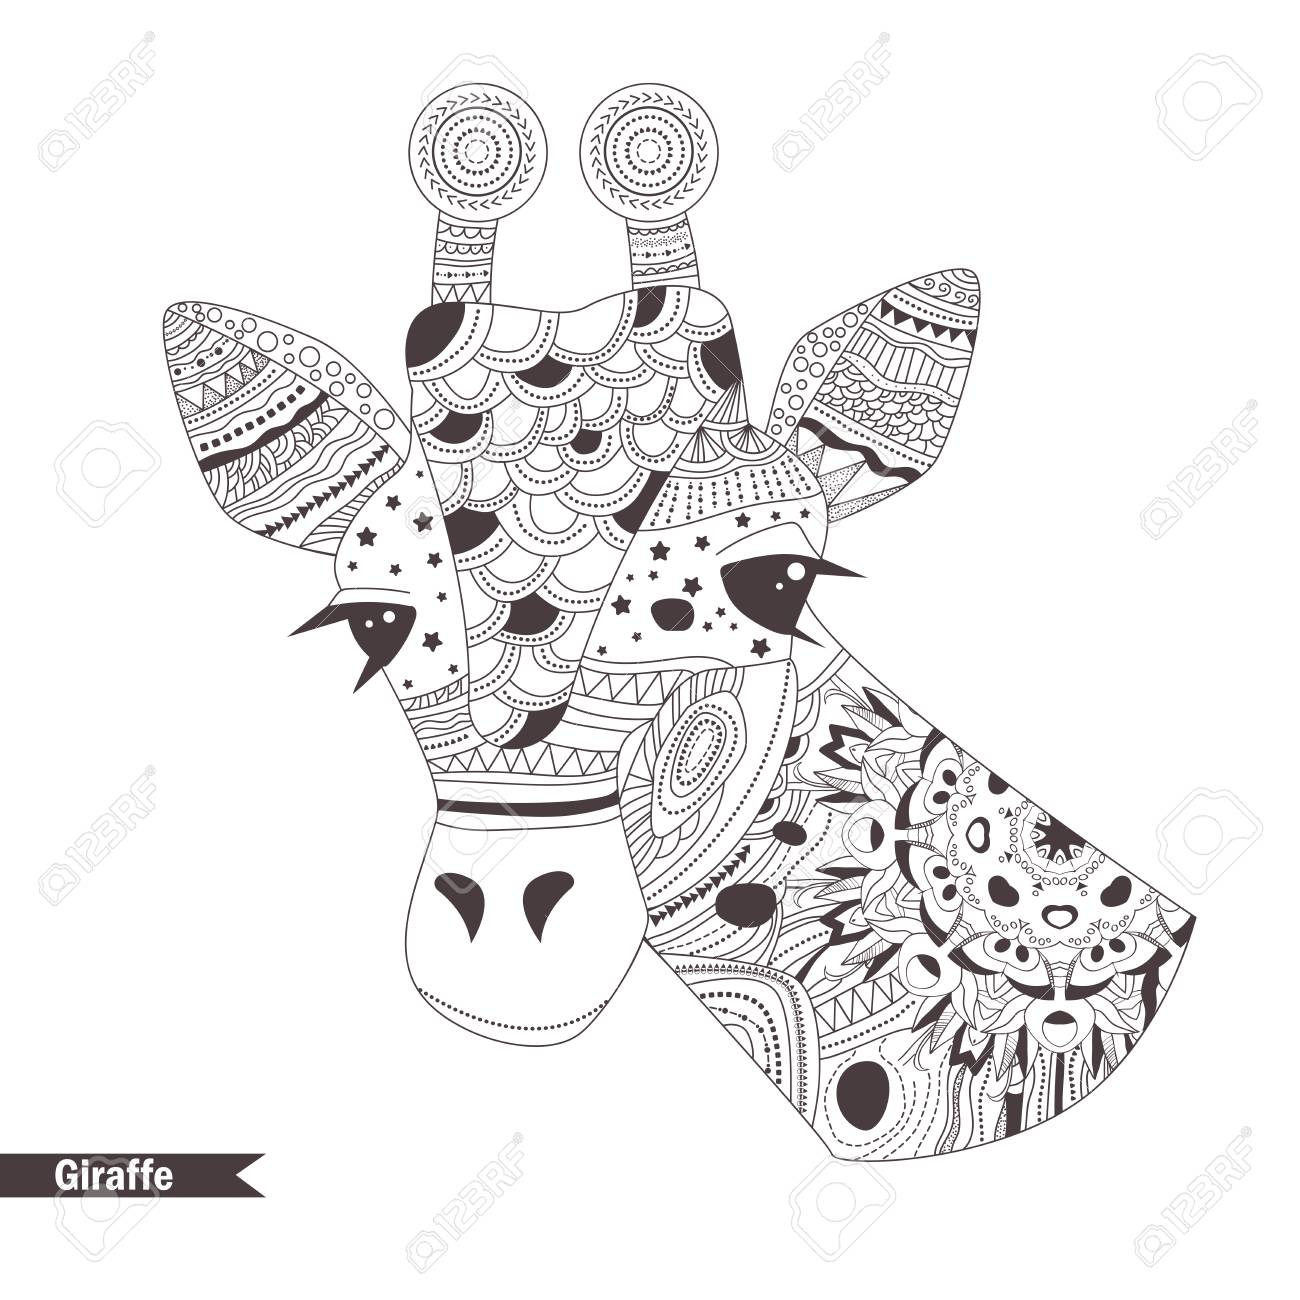 Giraffe. Coloring Book For Adult, Antistress Coloring Pages ...